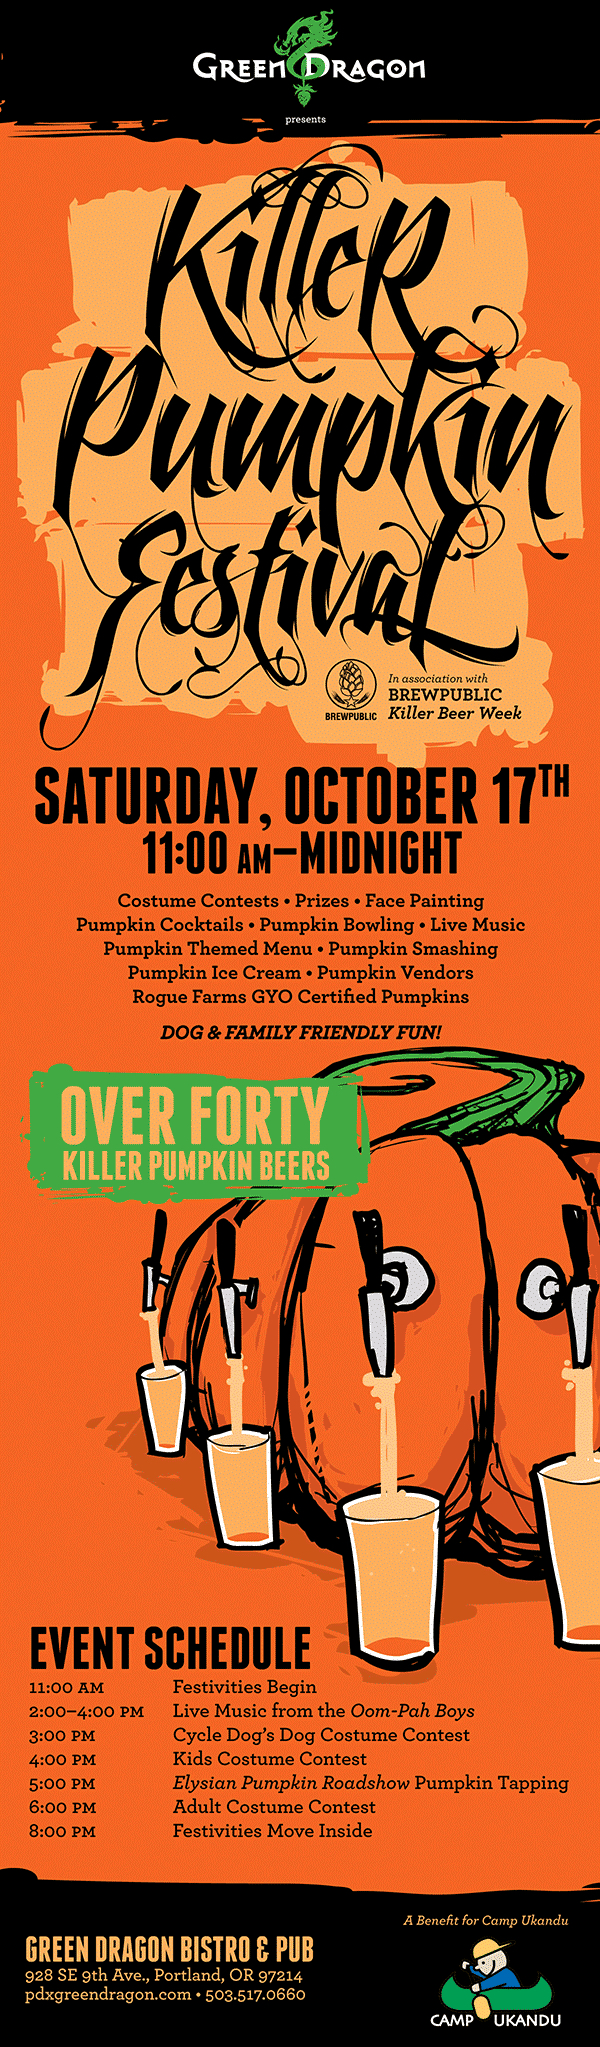 Killer Beer Week - Killer Pumpkin Fest Poster 2015